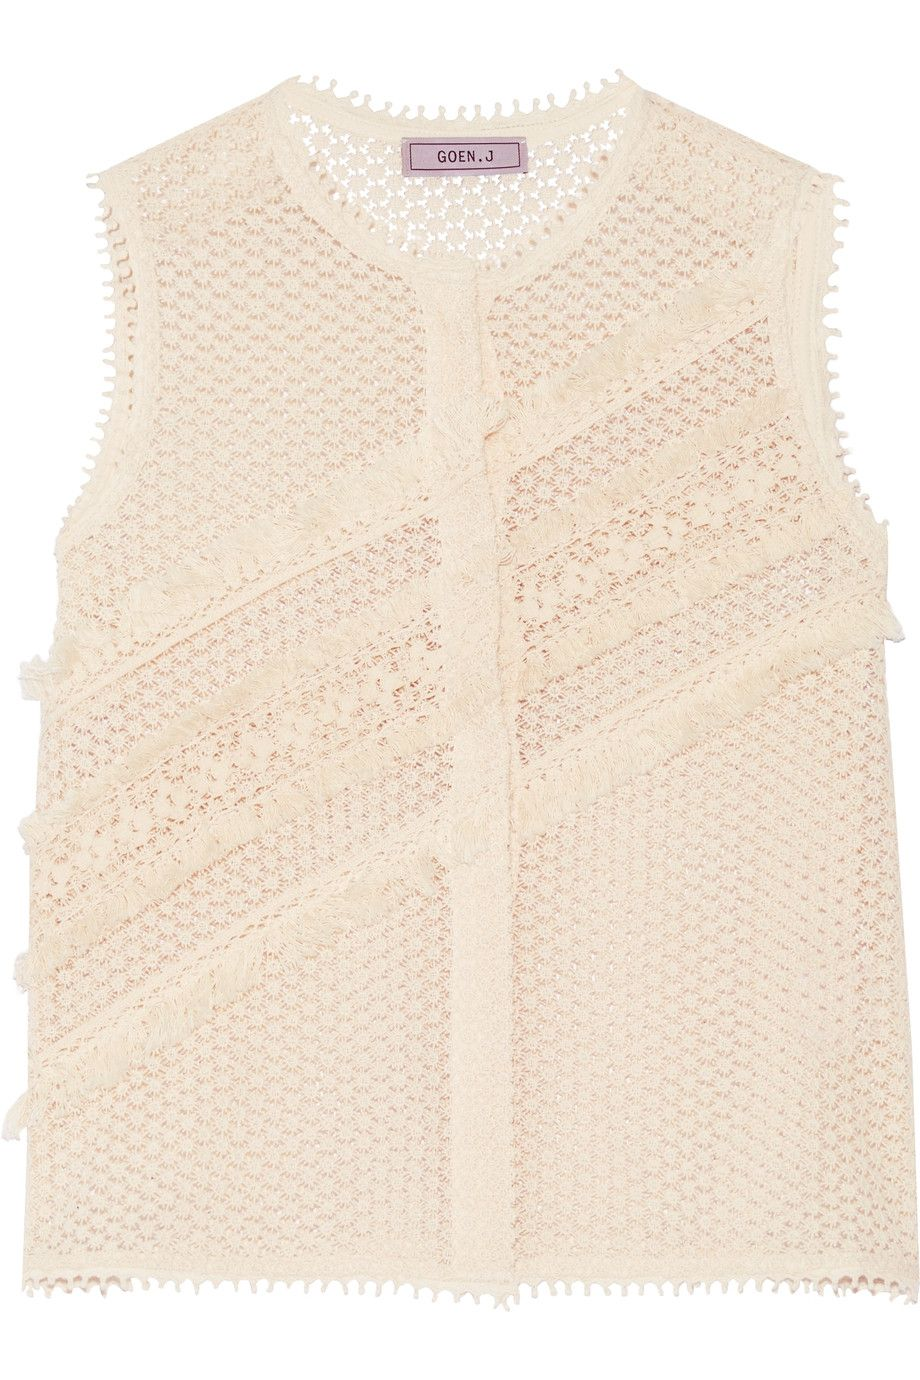 Goen J Fringed broderie anglaise cotton top